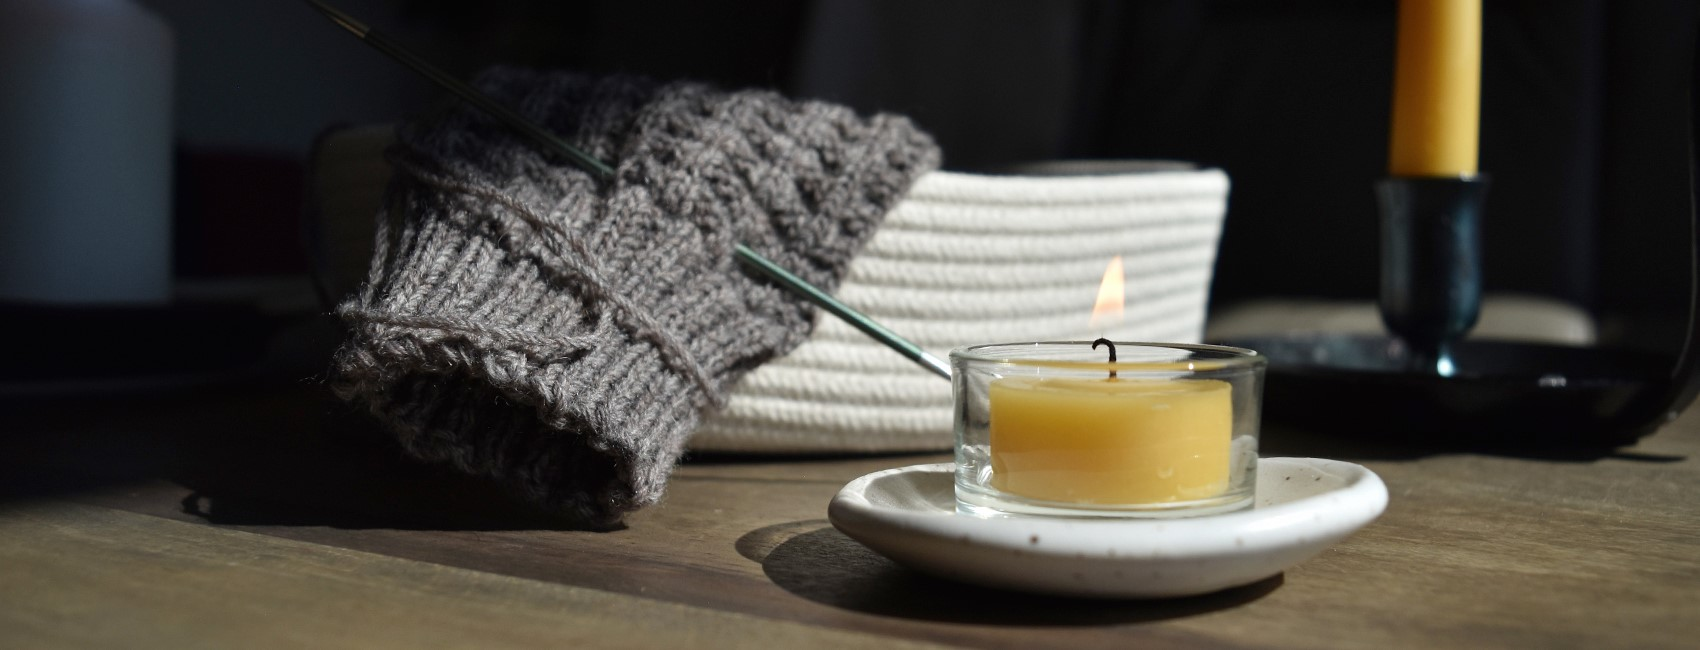 10 Cozy Tricks for Maximum Hygge This Winter